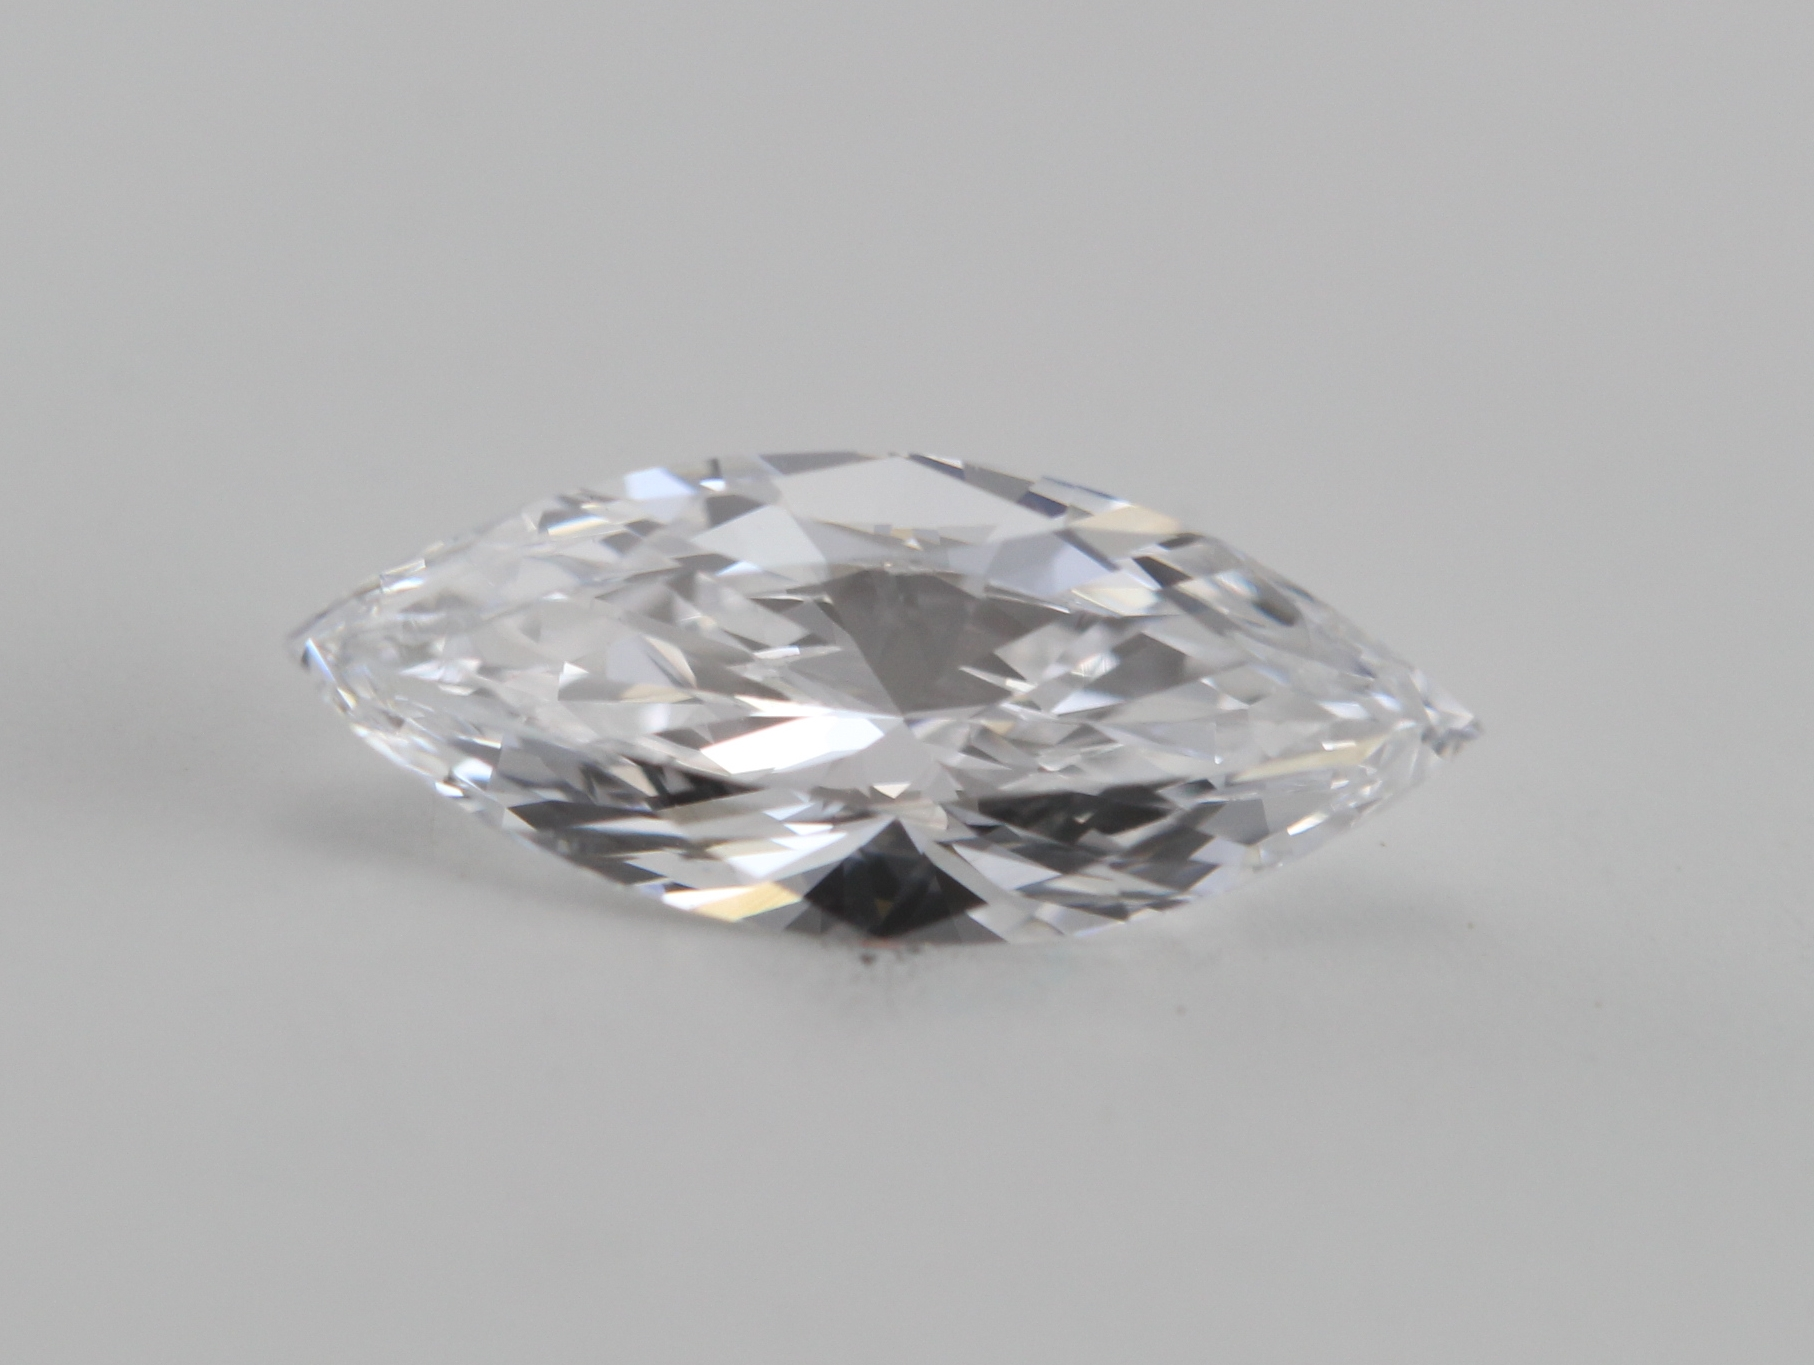 diamond cut cts diamondsearch d clarity color gia oval